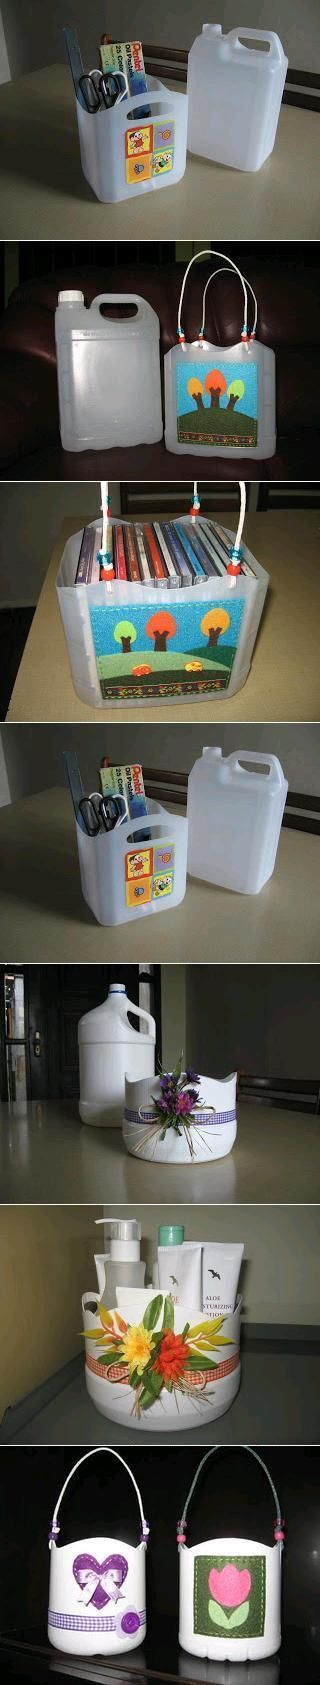 DIY Plastic Bottle Baskets